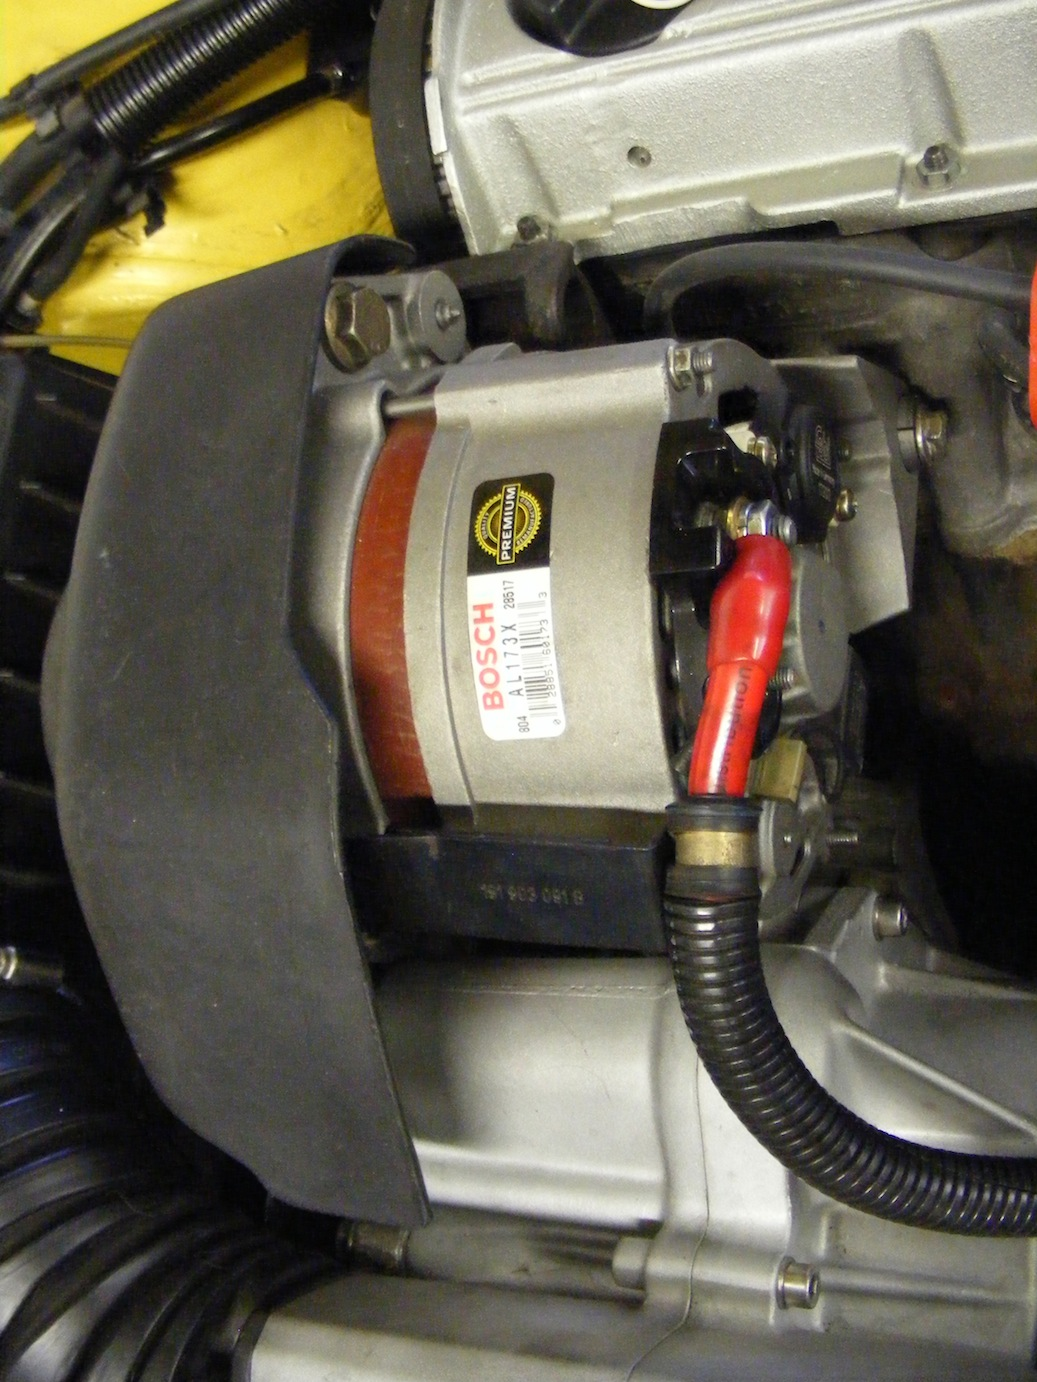 Overkill Wiring Alternator Wire The Endless Corrado G60 Project Understand How To Up 3